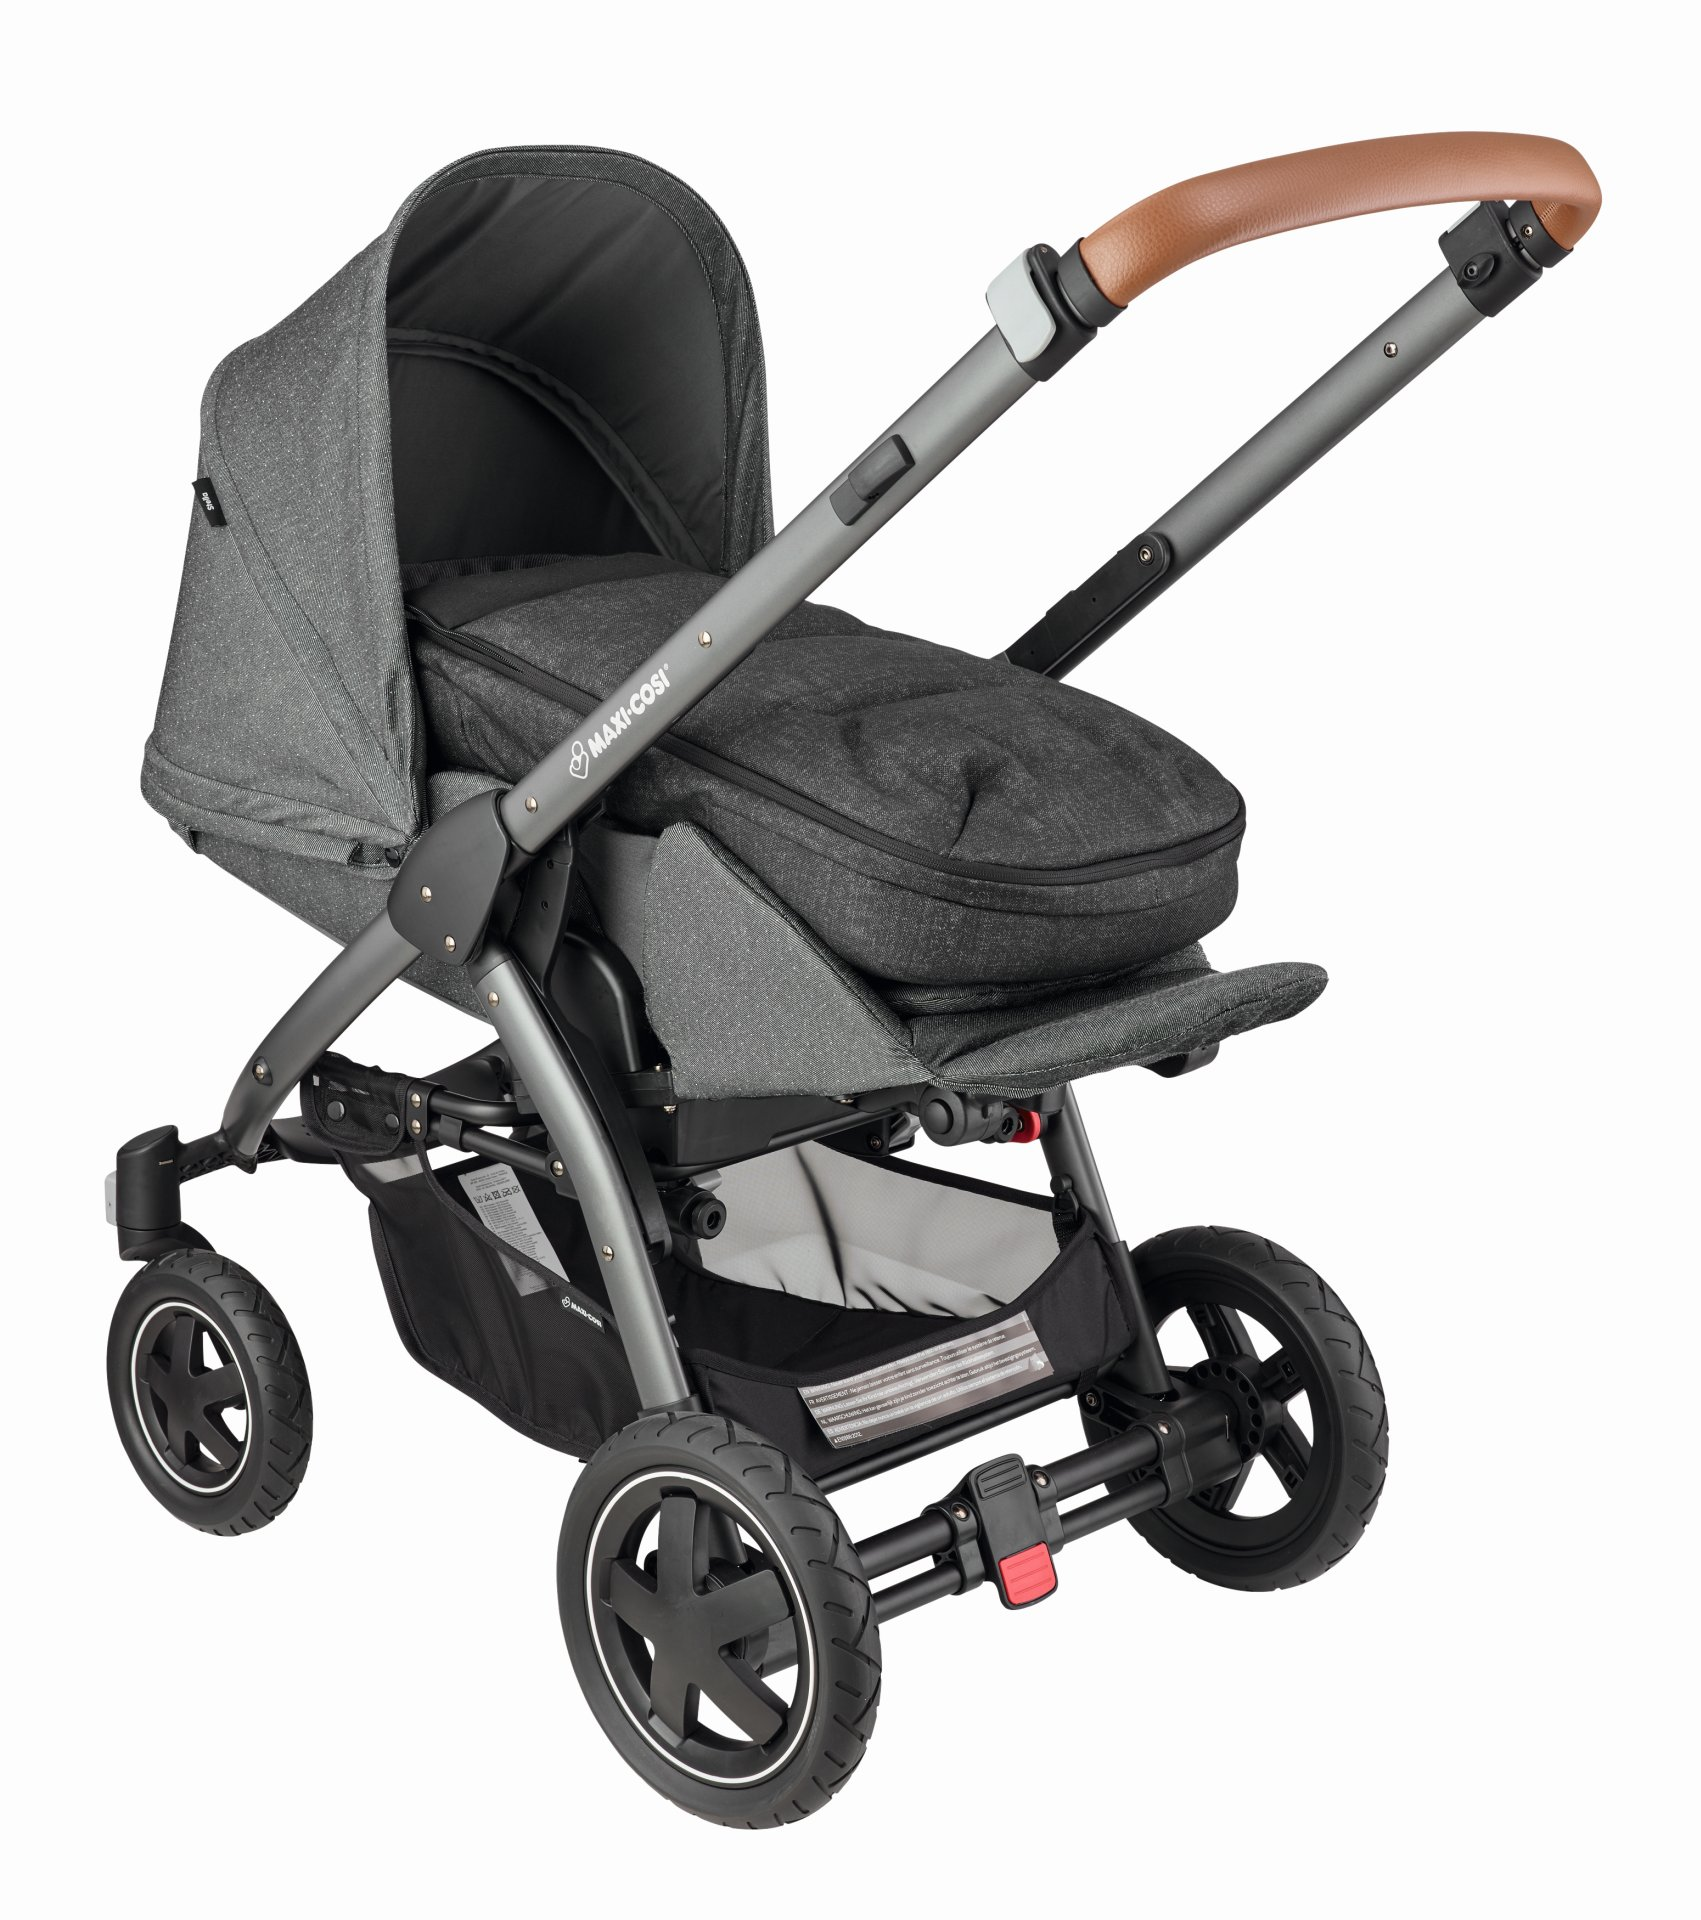 maxi cosi stroller stella 2019 sparkling grey buy at. Black Bedroom Furniture Sets. Home Design Ideas